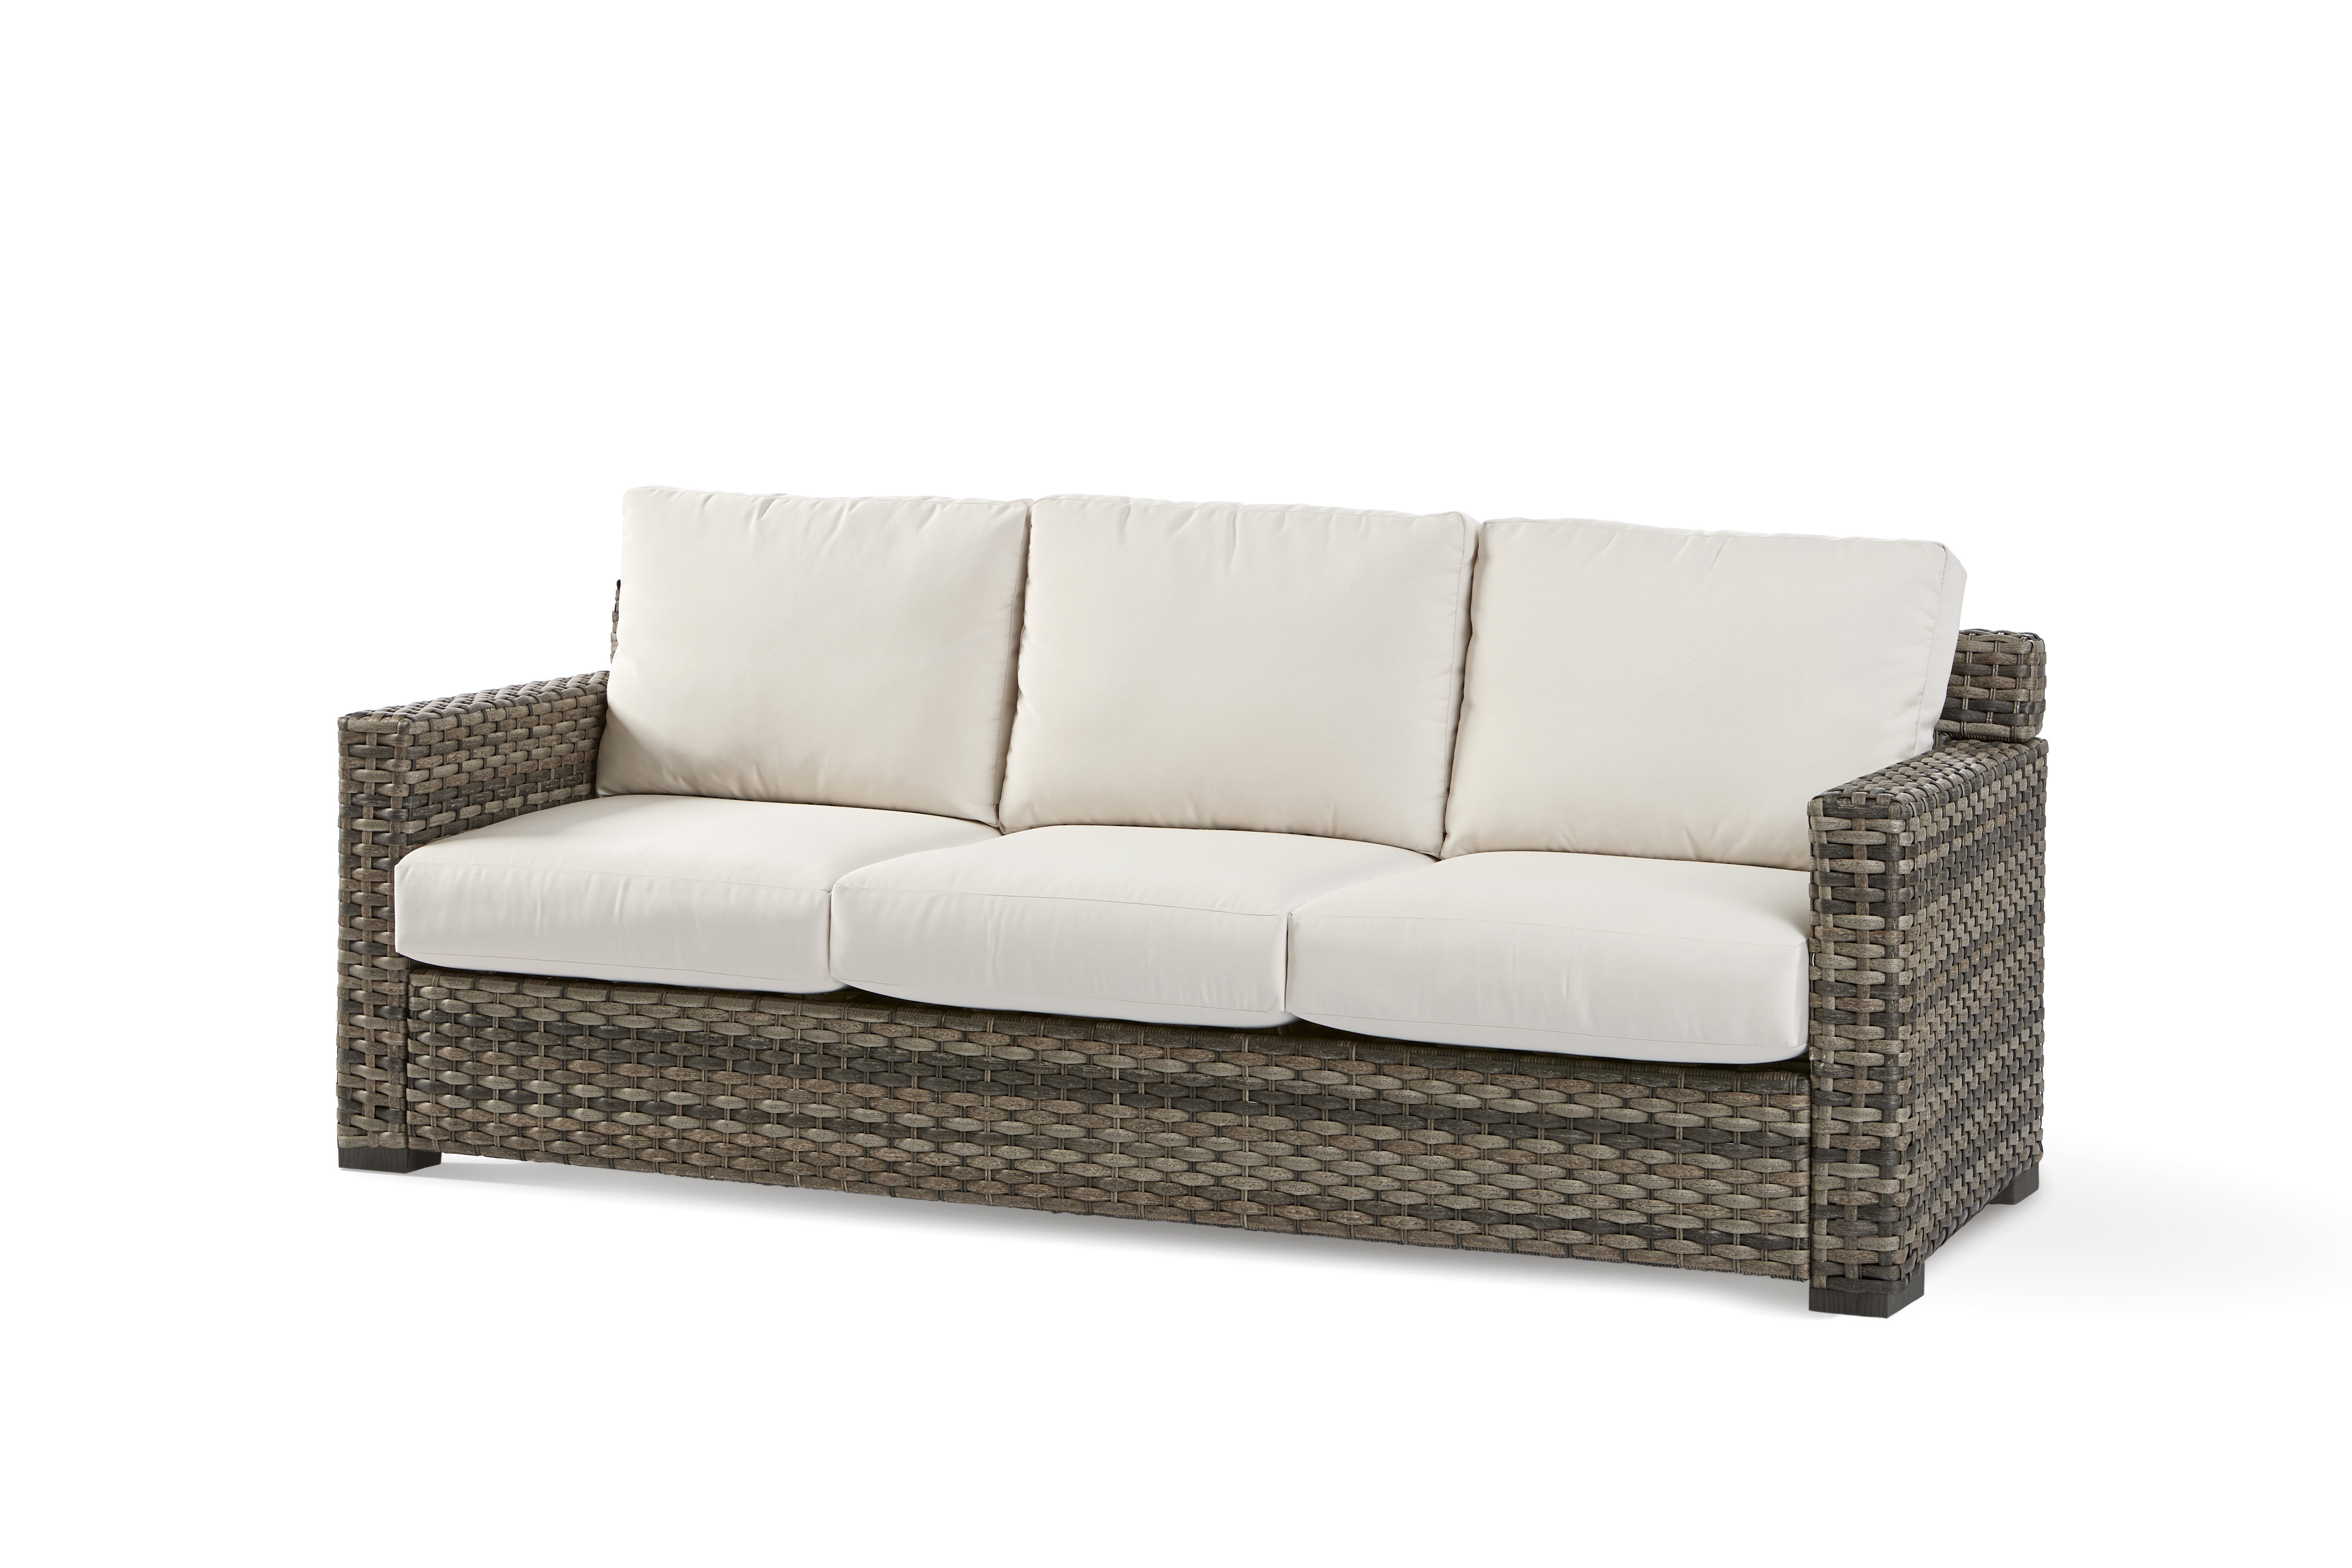 Jakarta Patio Sofa With Sunbrella Cushion Pertaining To 2020 Mcmanis Patio Sofas With Cushion (View 7 of 20)